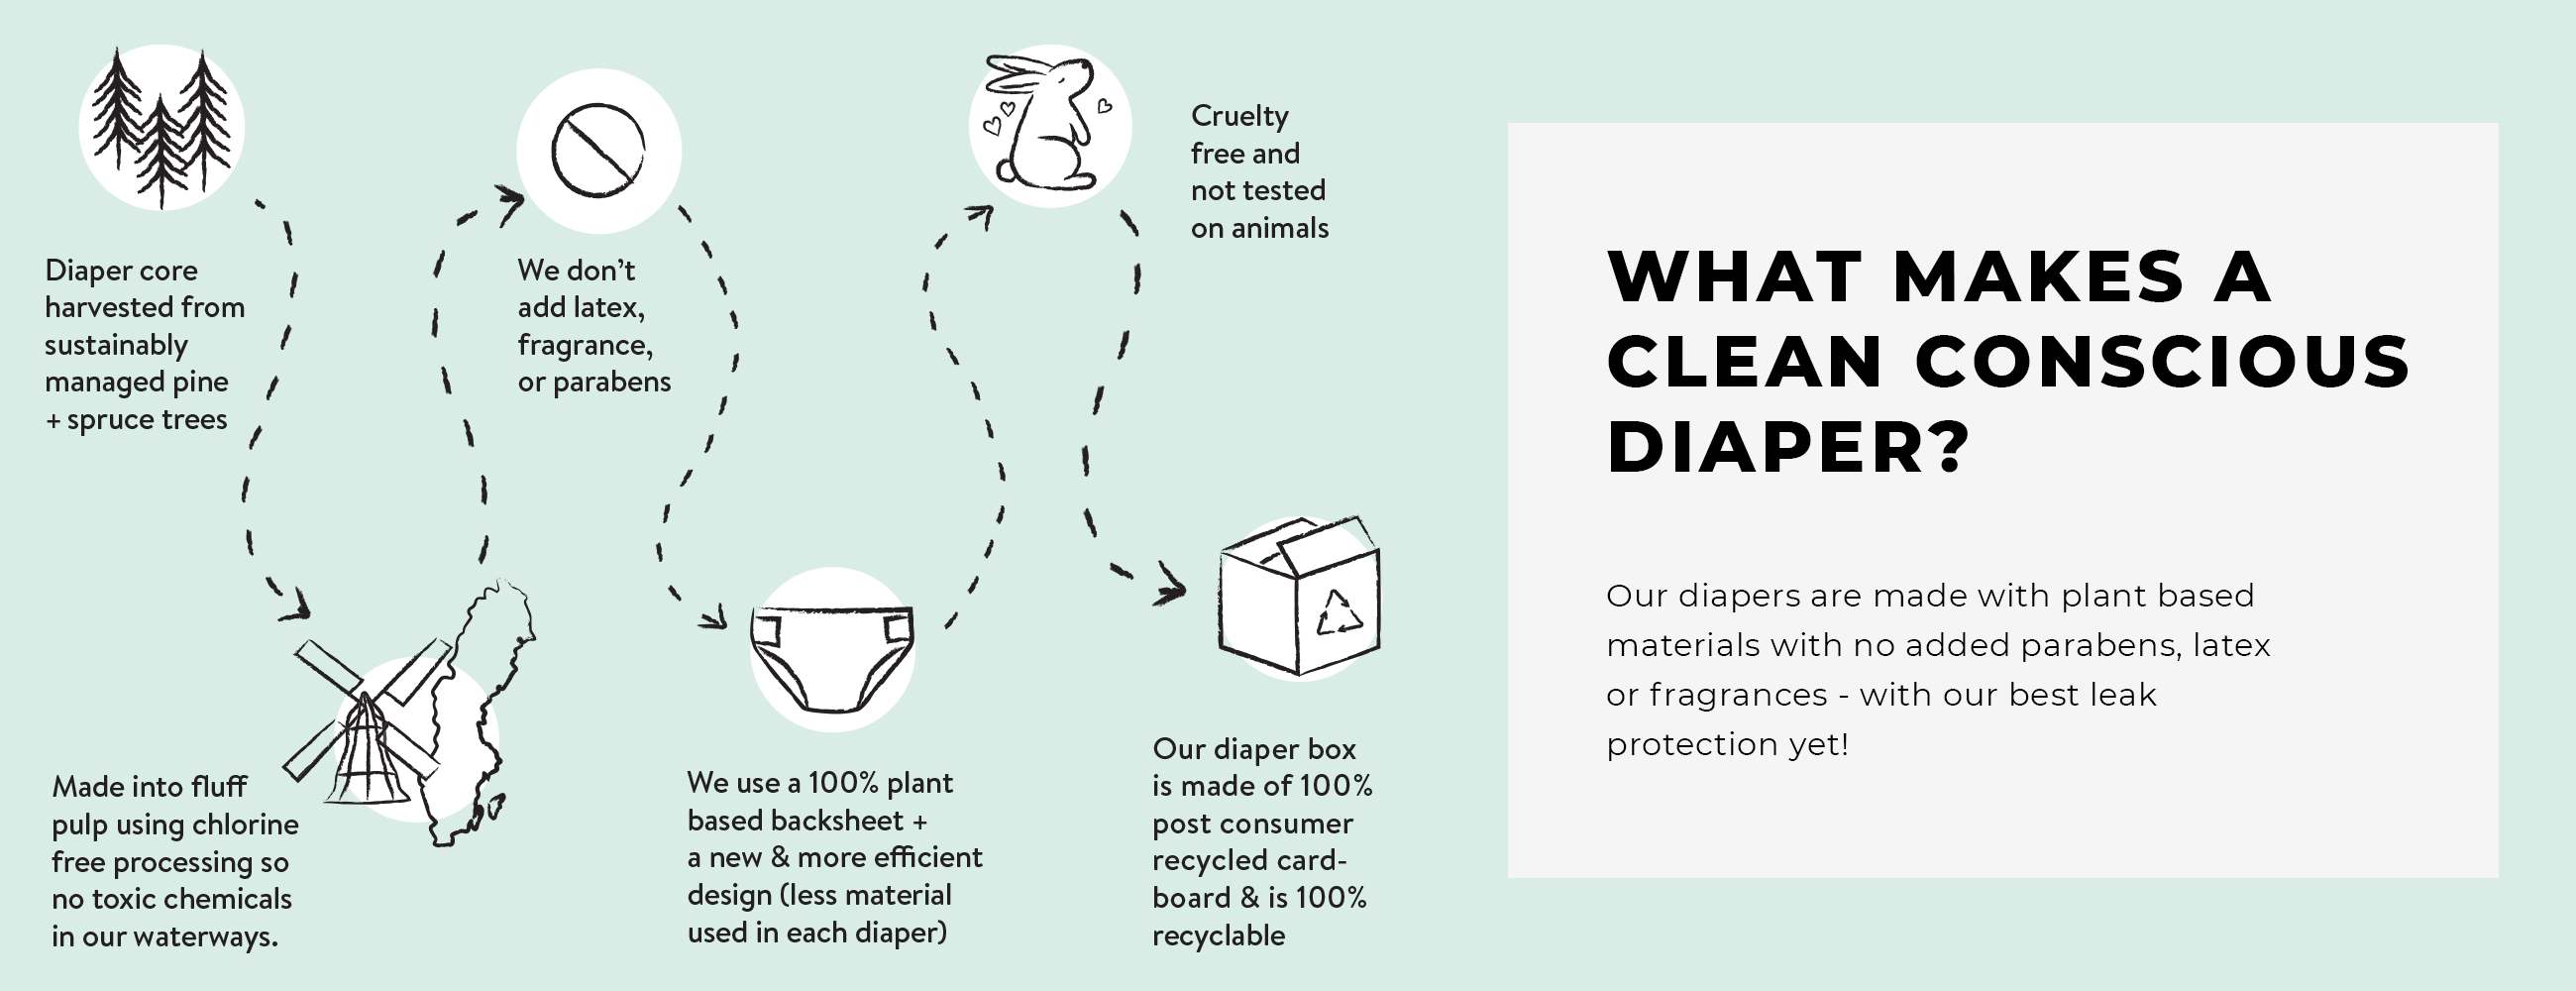 Introducing our upgraded New Clean Conscious Diaper